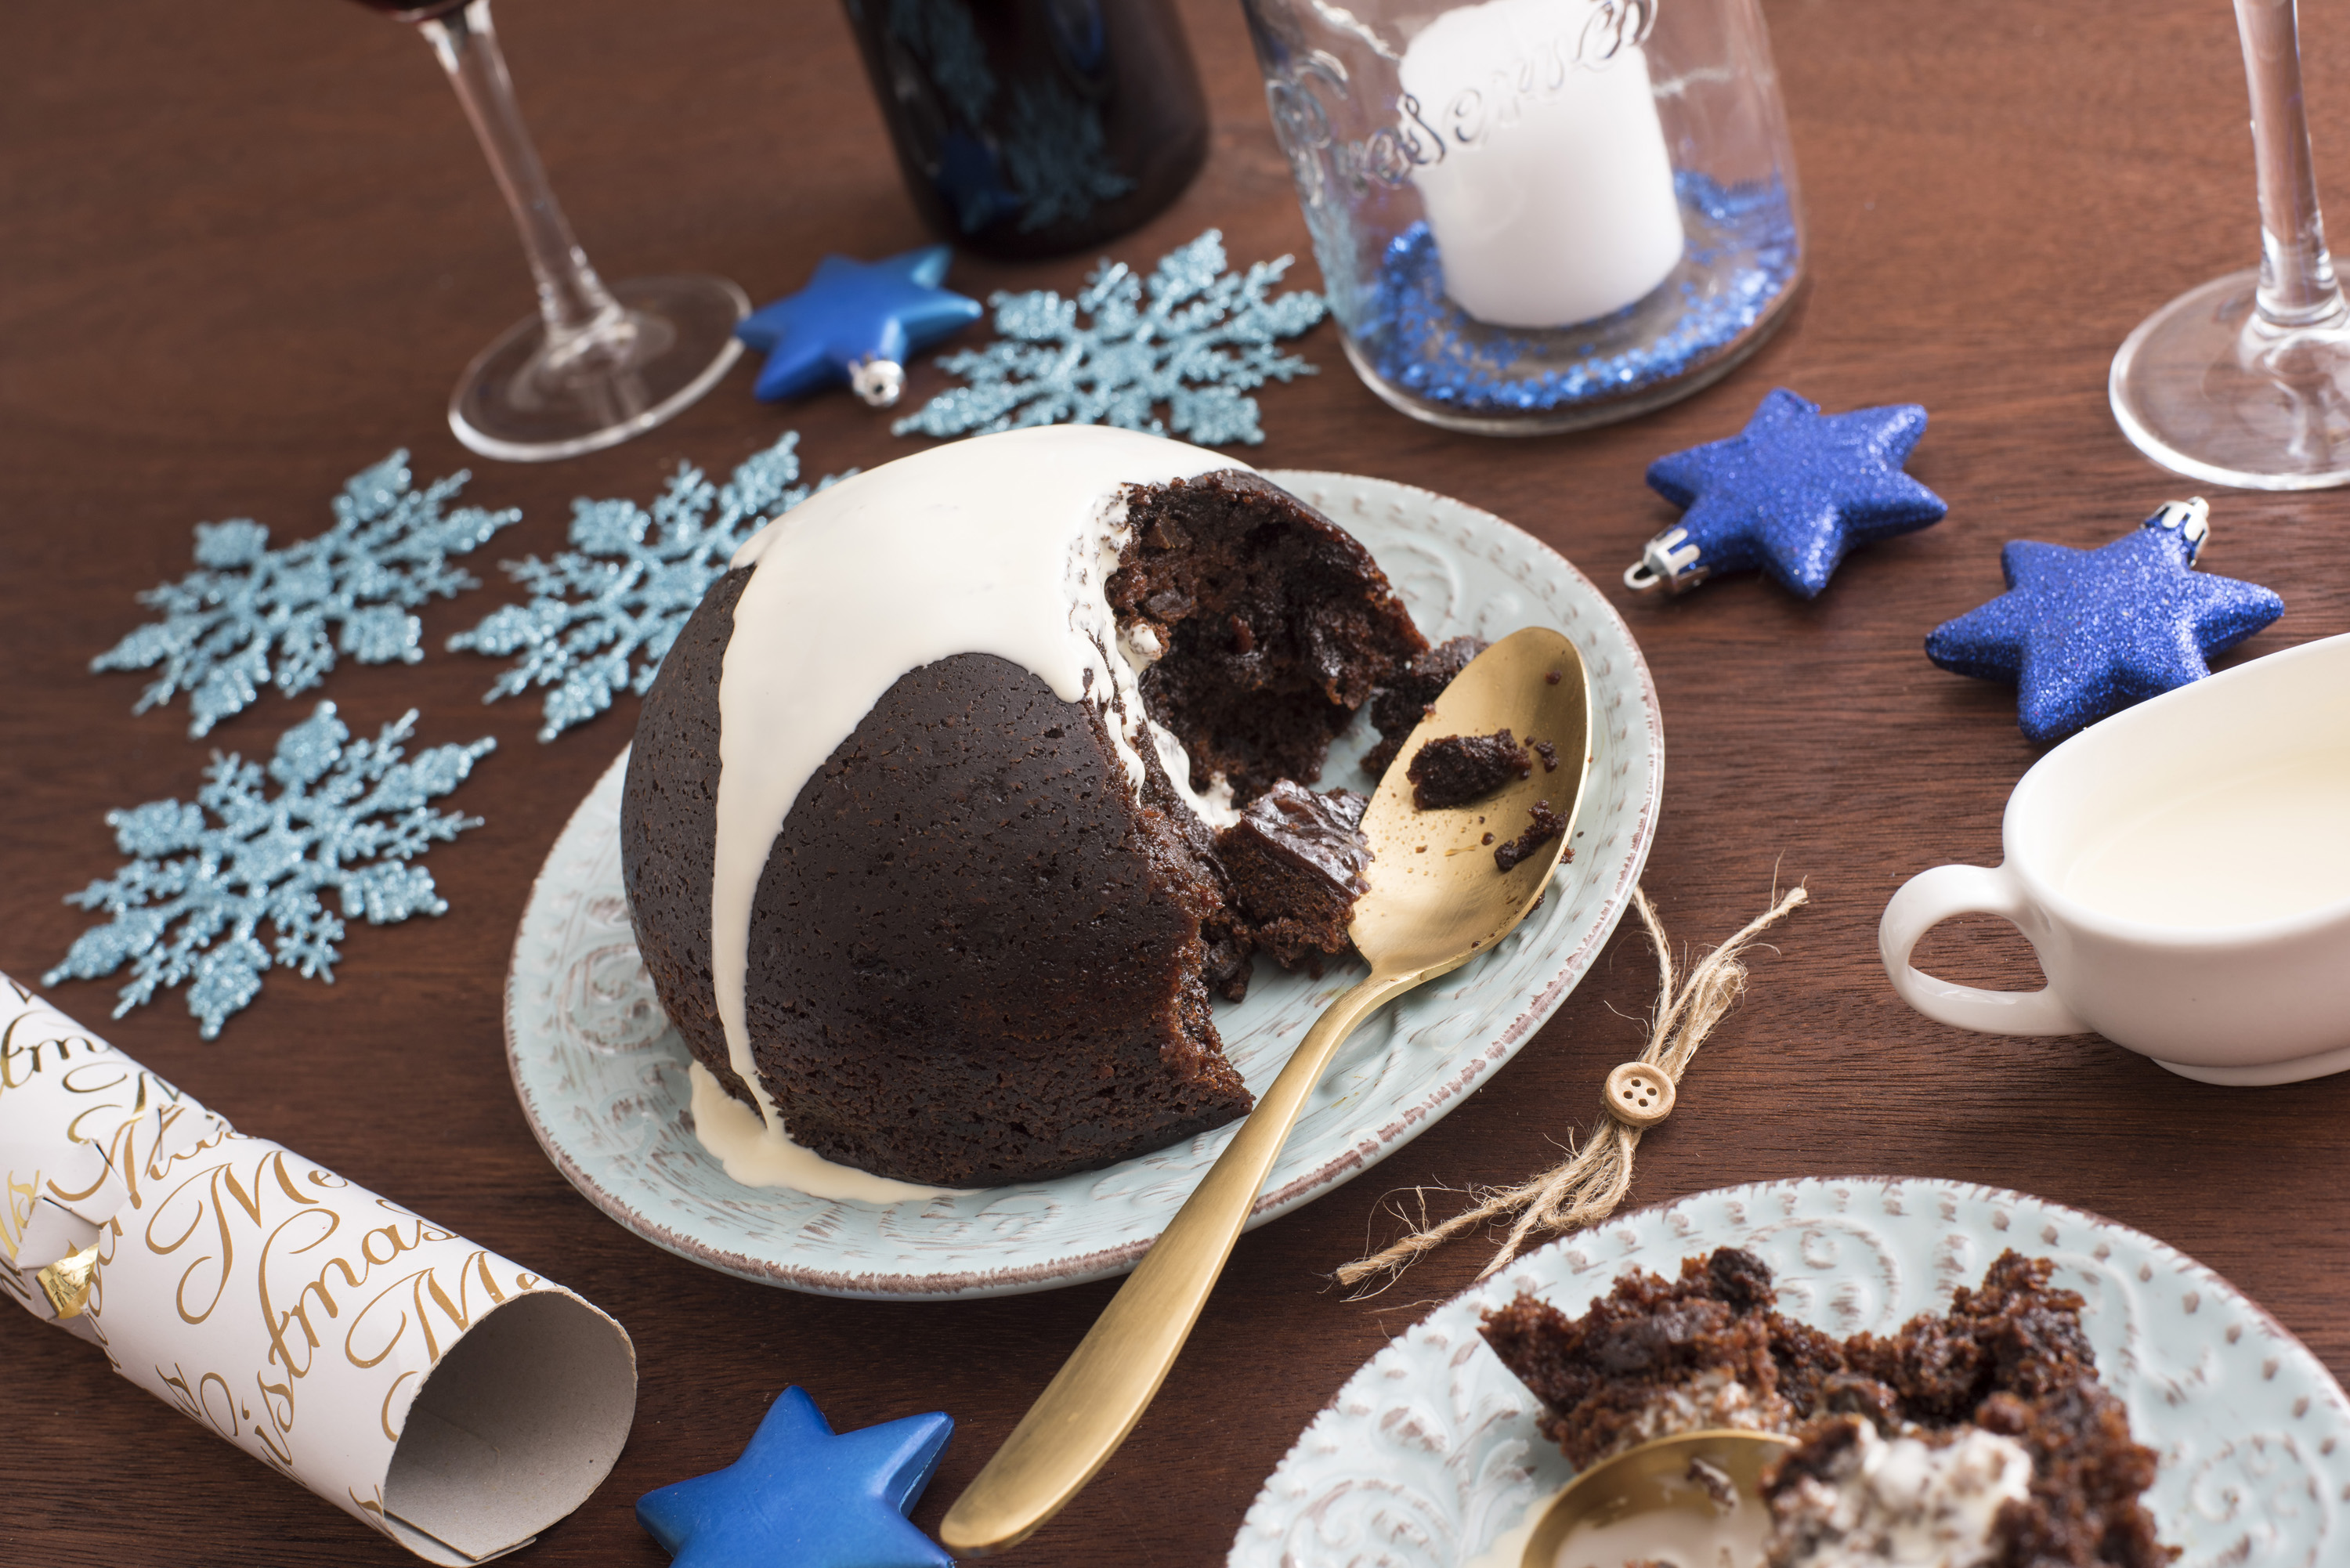 Delicious fruity Christmas pudding with brandy cream being served for dinner on a decorated table with blue snowflakes and stars